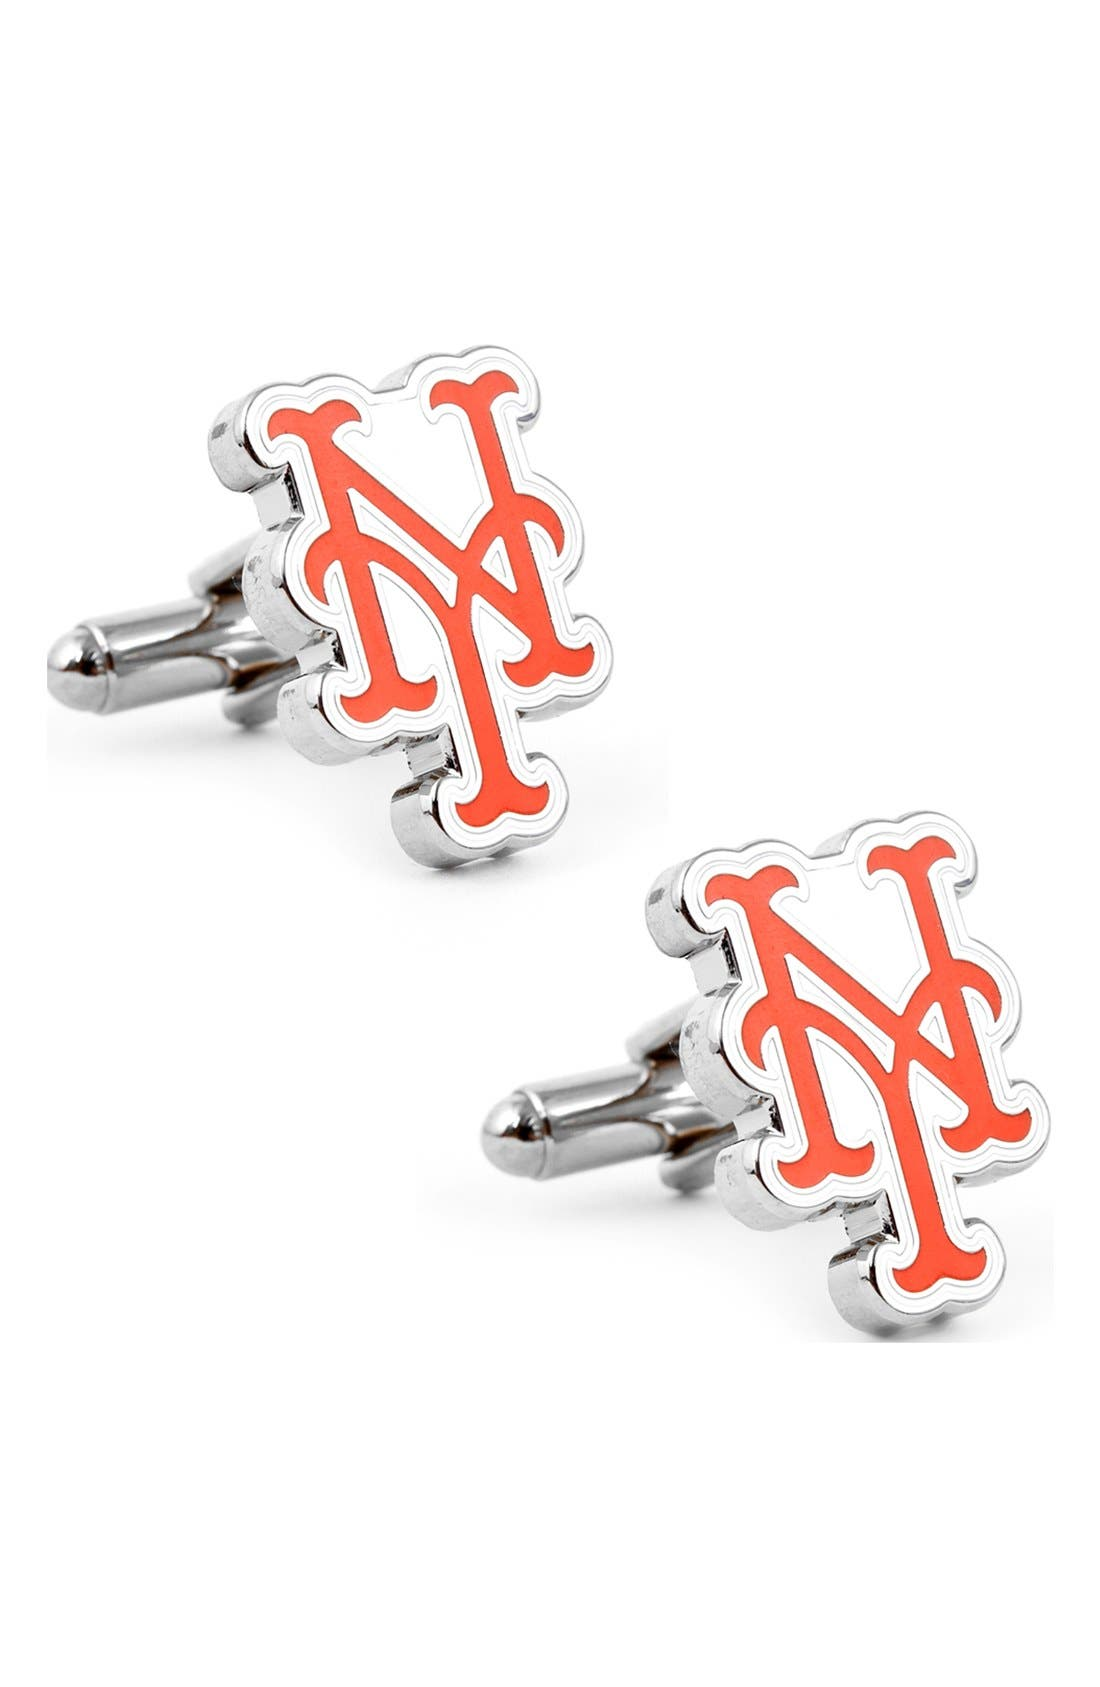 'New York Mets' Cuff Links,                             Main thumbnail 1, color,                             040